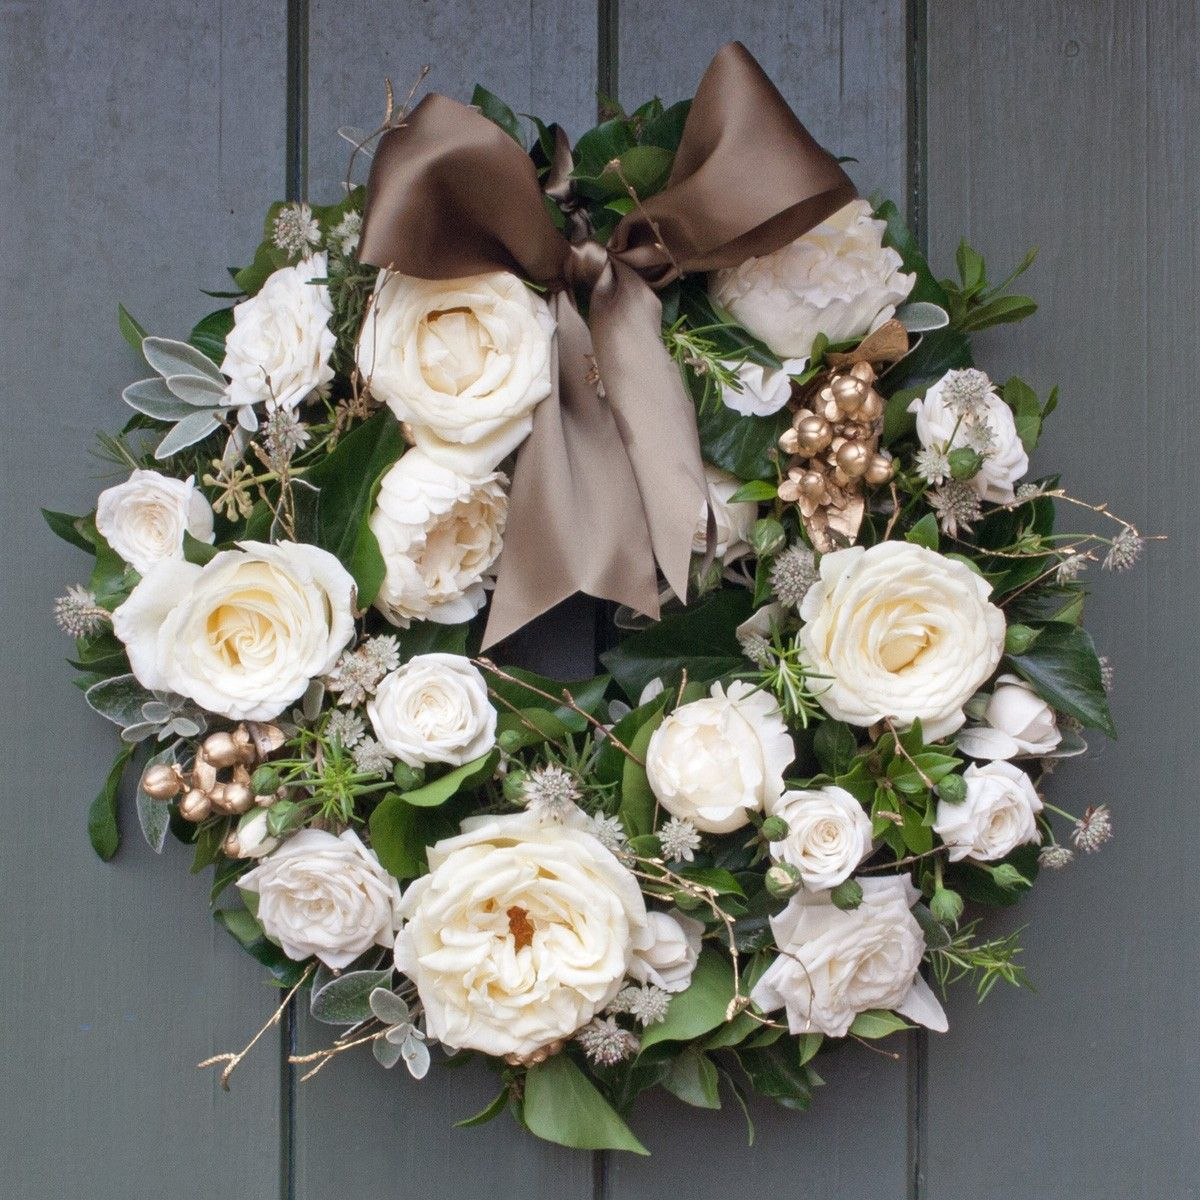 Genial This Beautiful Gold U0026 Ivory Door Wreath Has A Mixture Of Luxury Scented  Ivory Vitality Roses And Cream Piaget Roses Which Are Exclusively Grown On  Our Farm ...